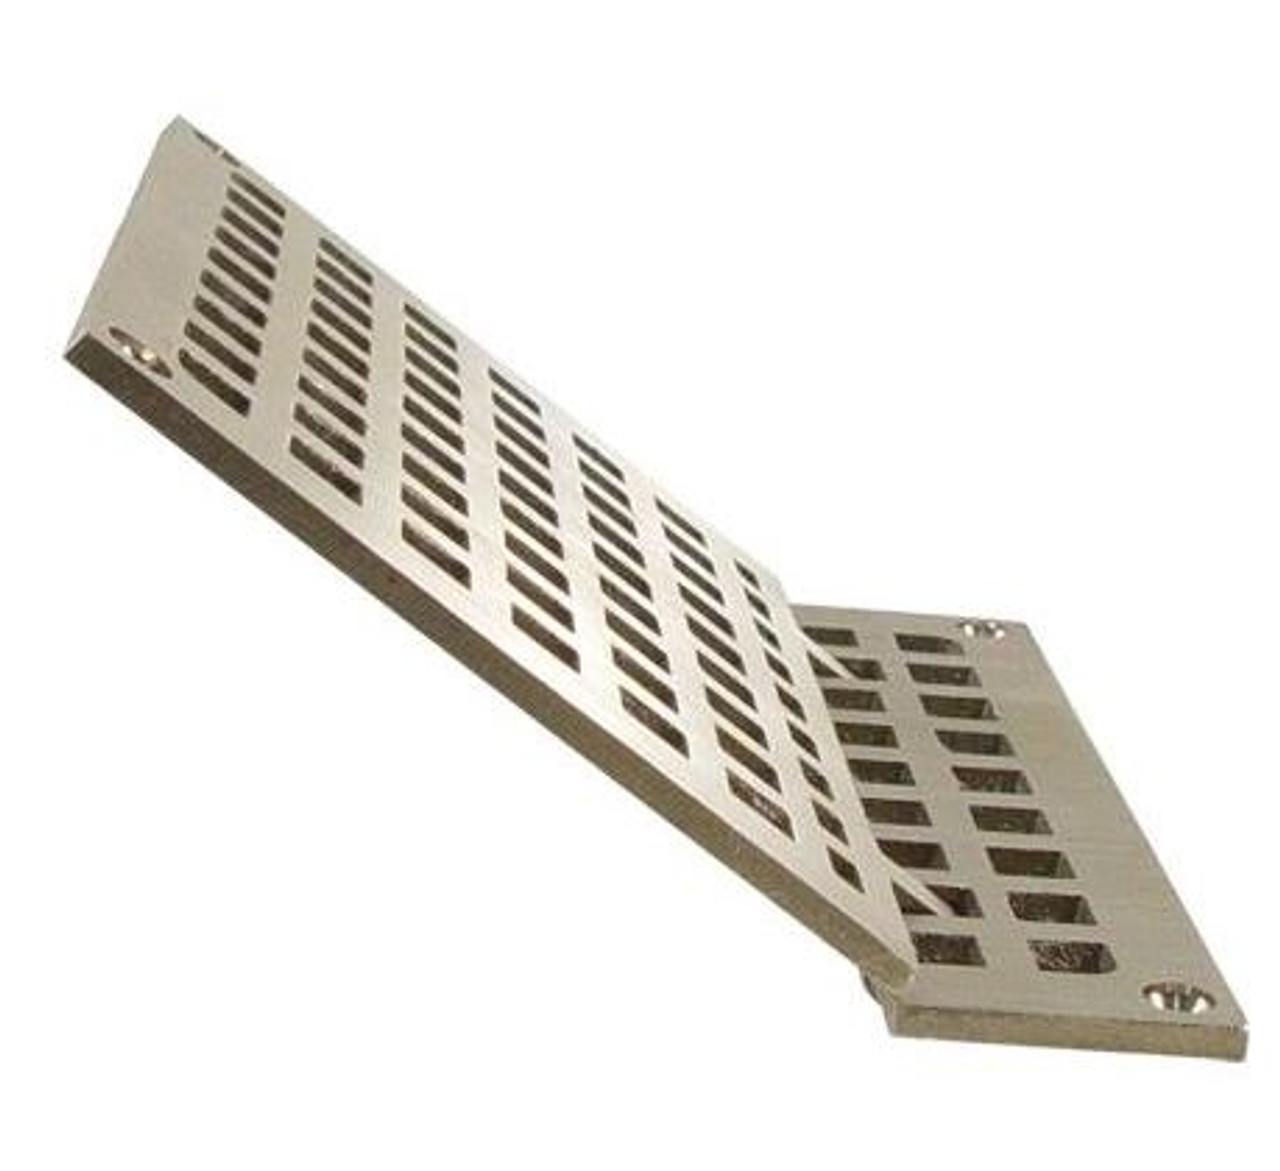 Square Hinged Drain Grate 7 3/8 inch Brass Floor Drain Strainer